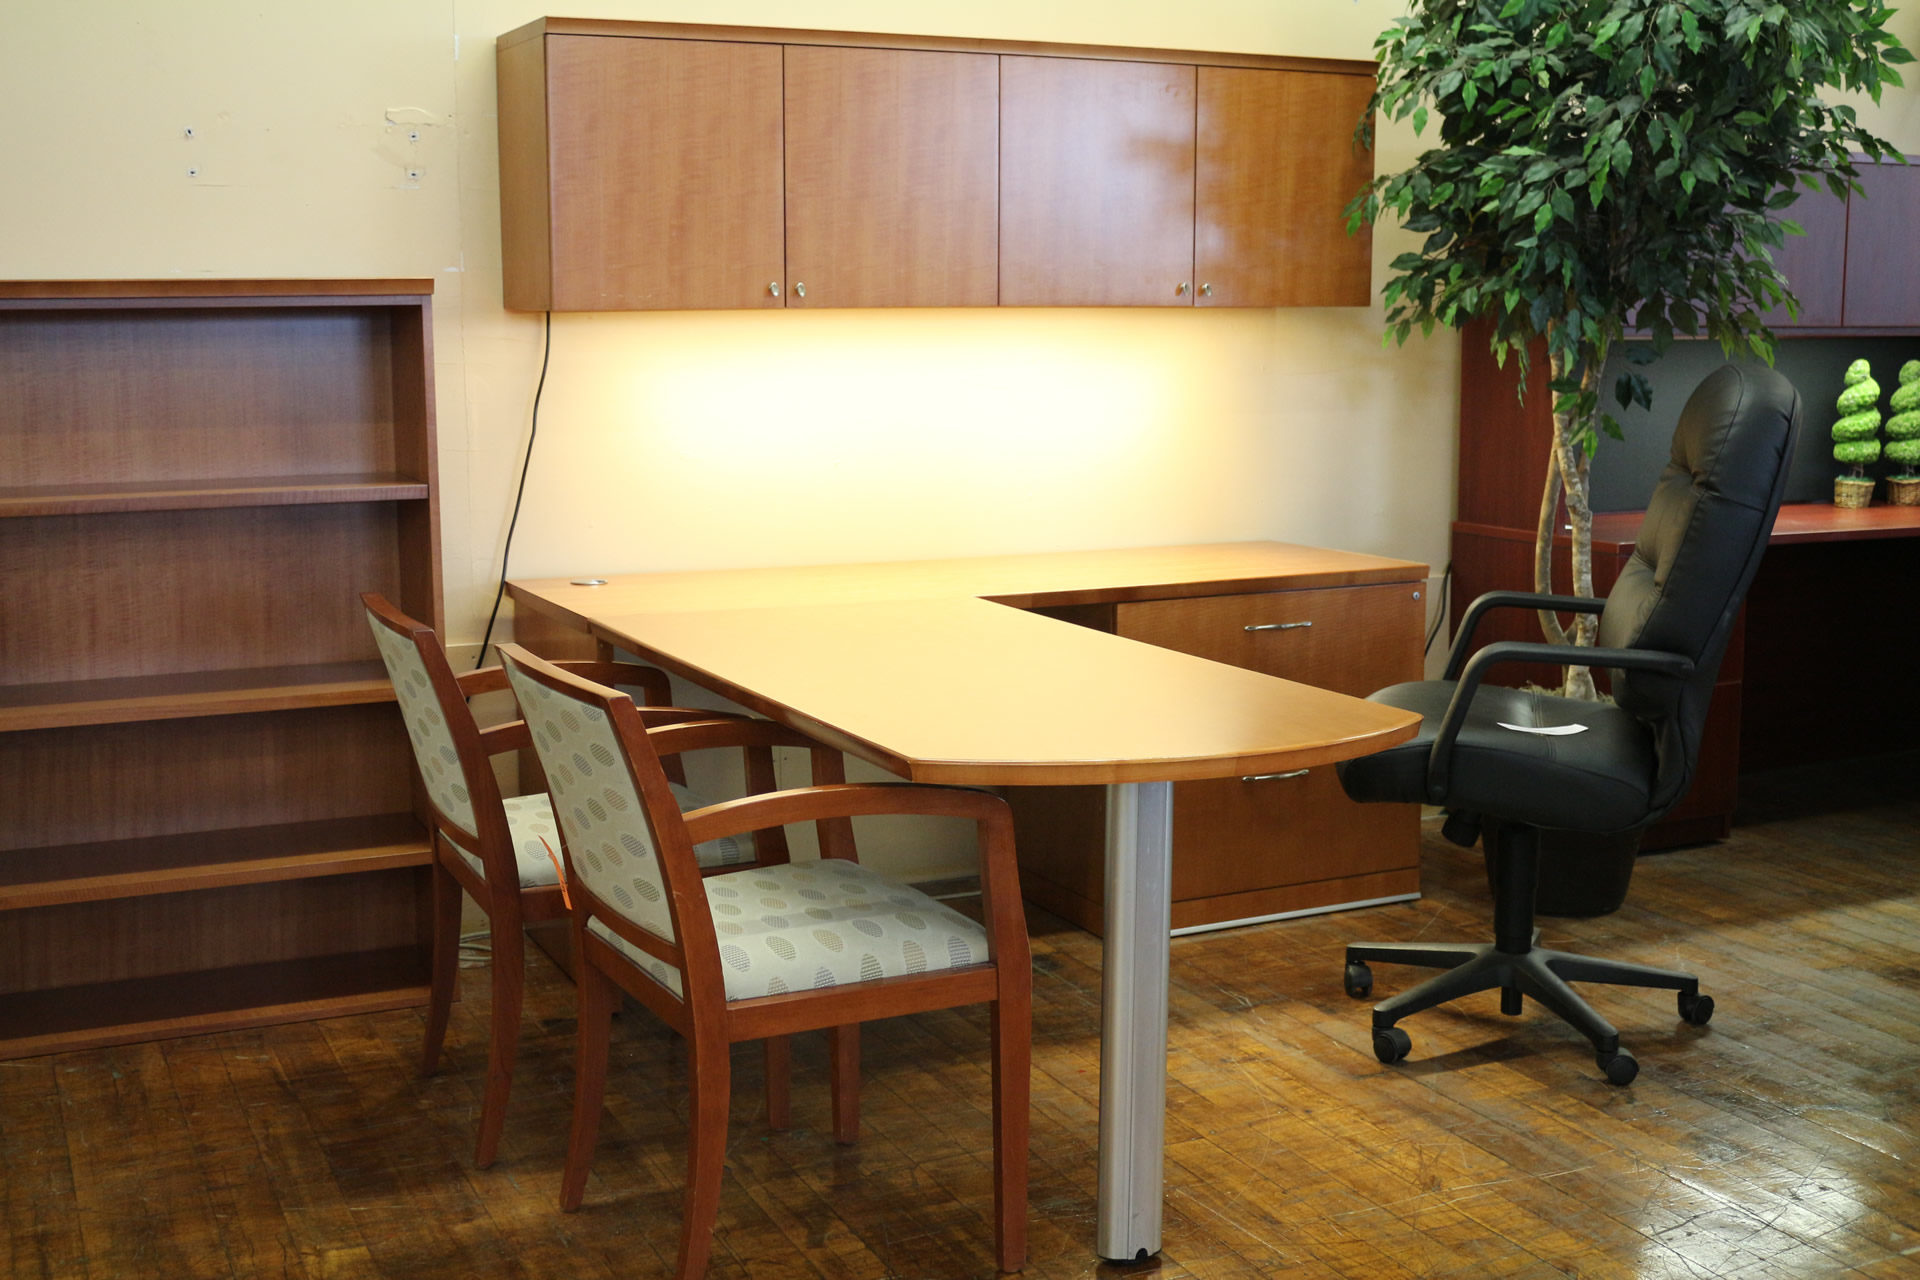 Used Bernhardt Anigre L-Desk with Overhead Storage